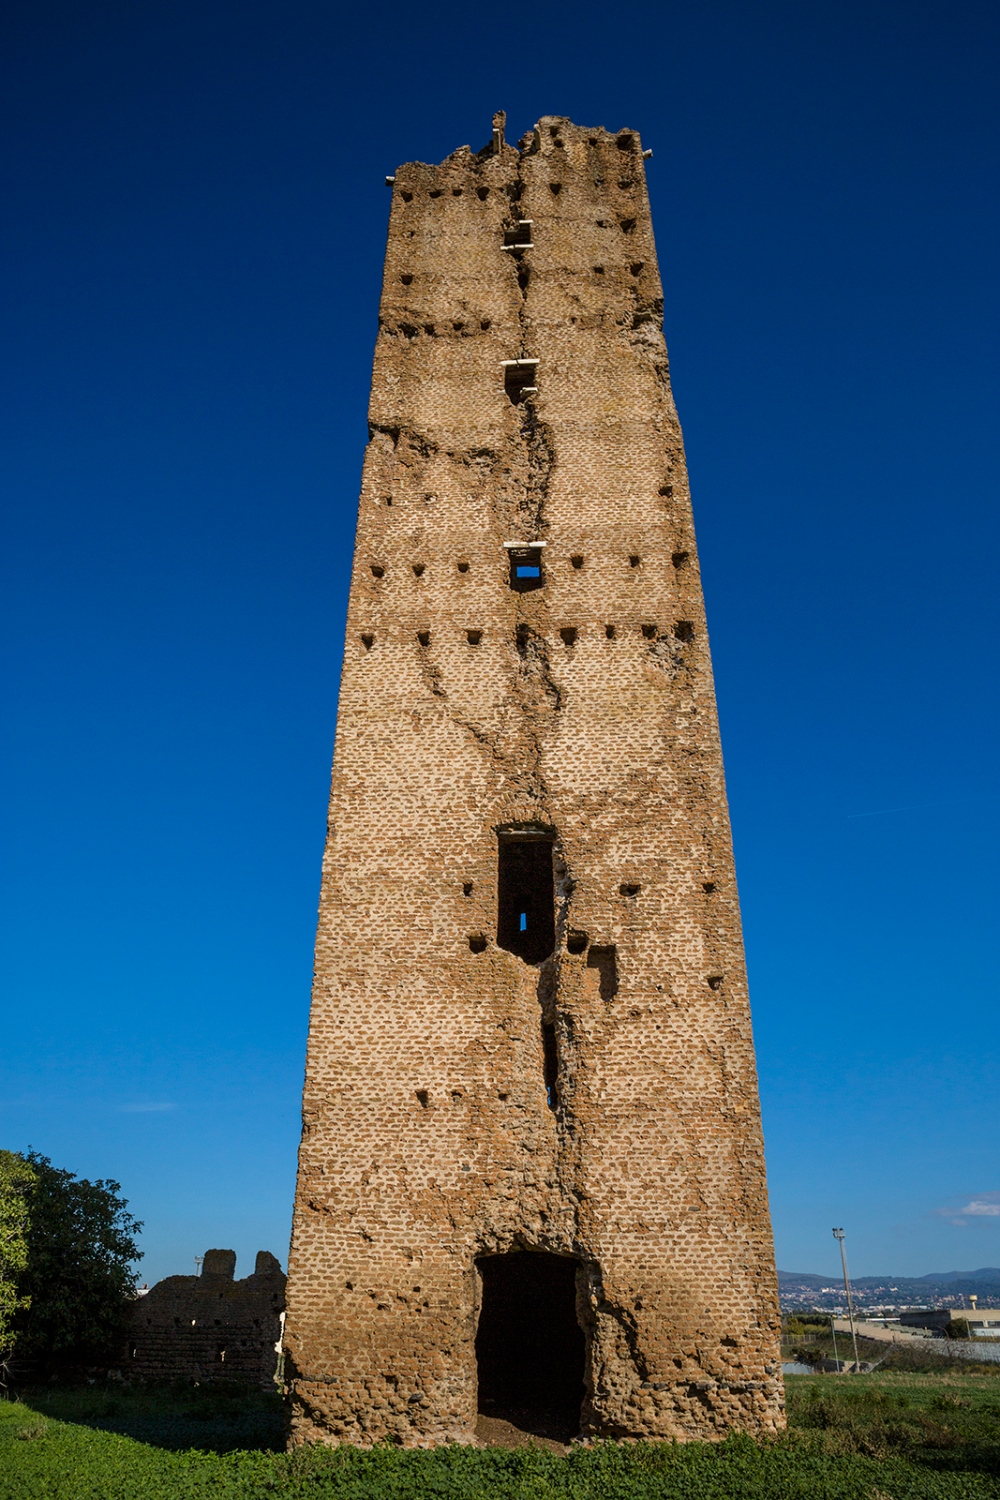 One of the several medieval towers scattered around the city